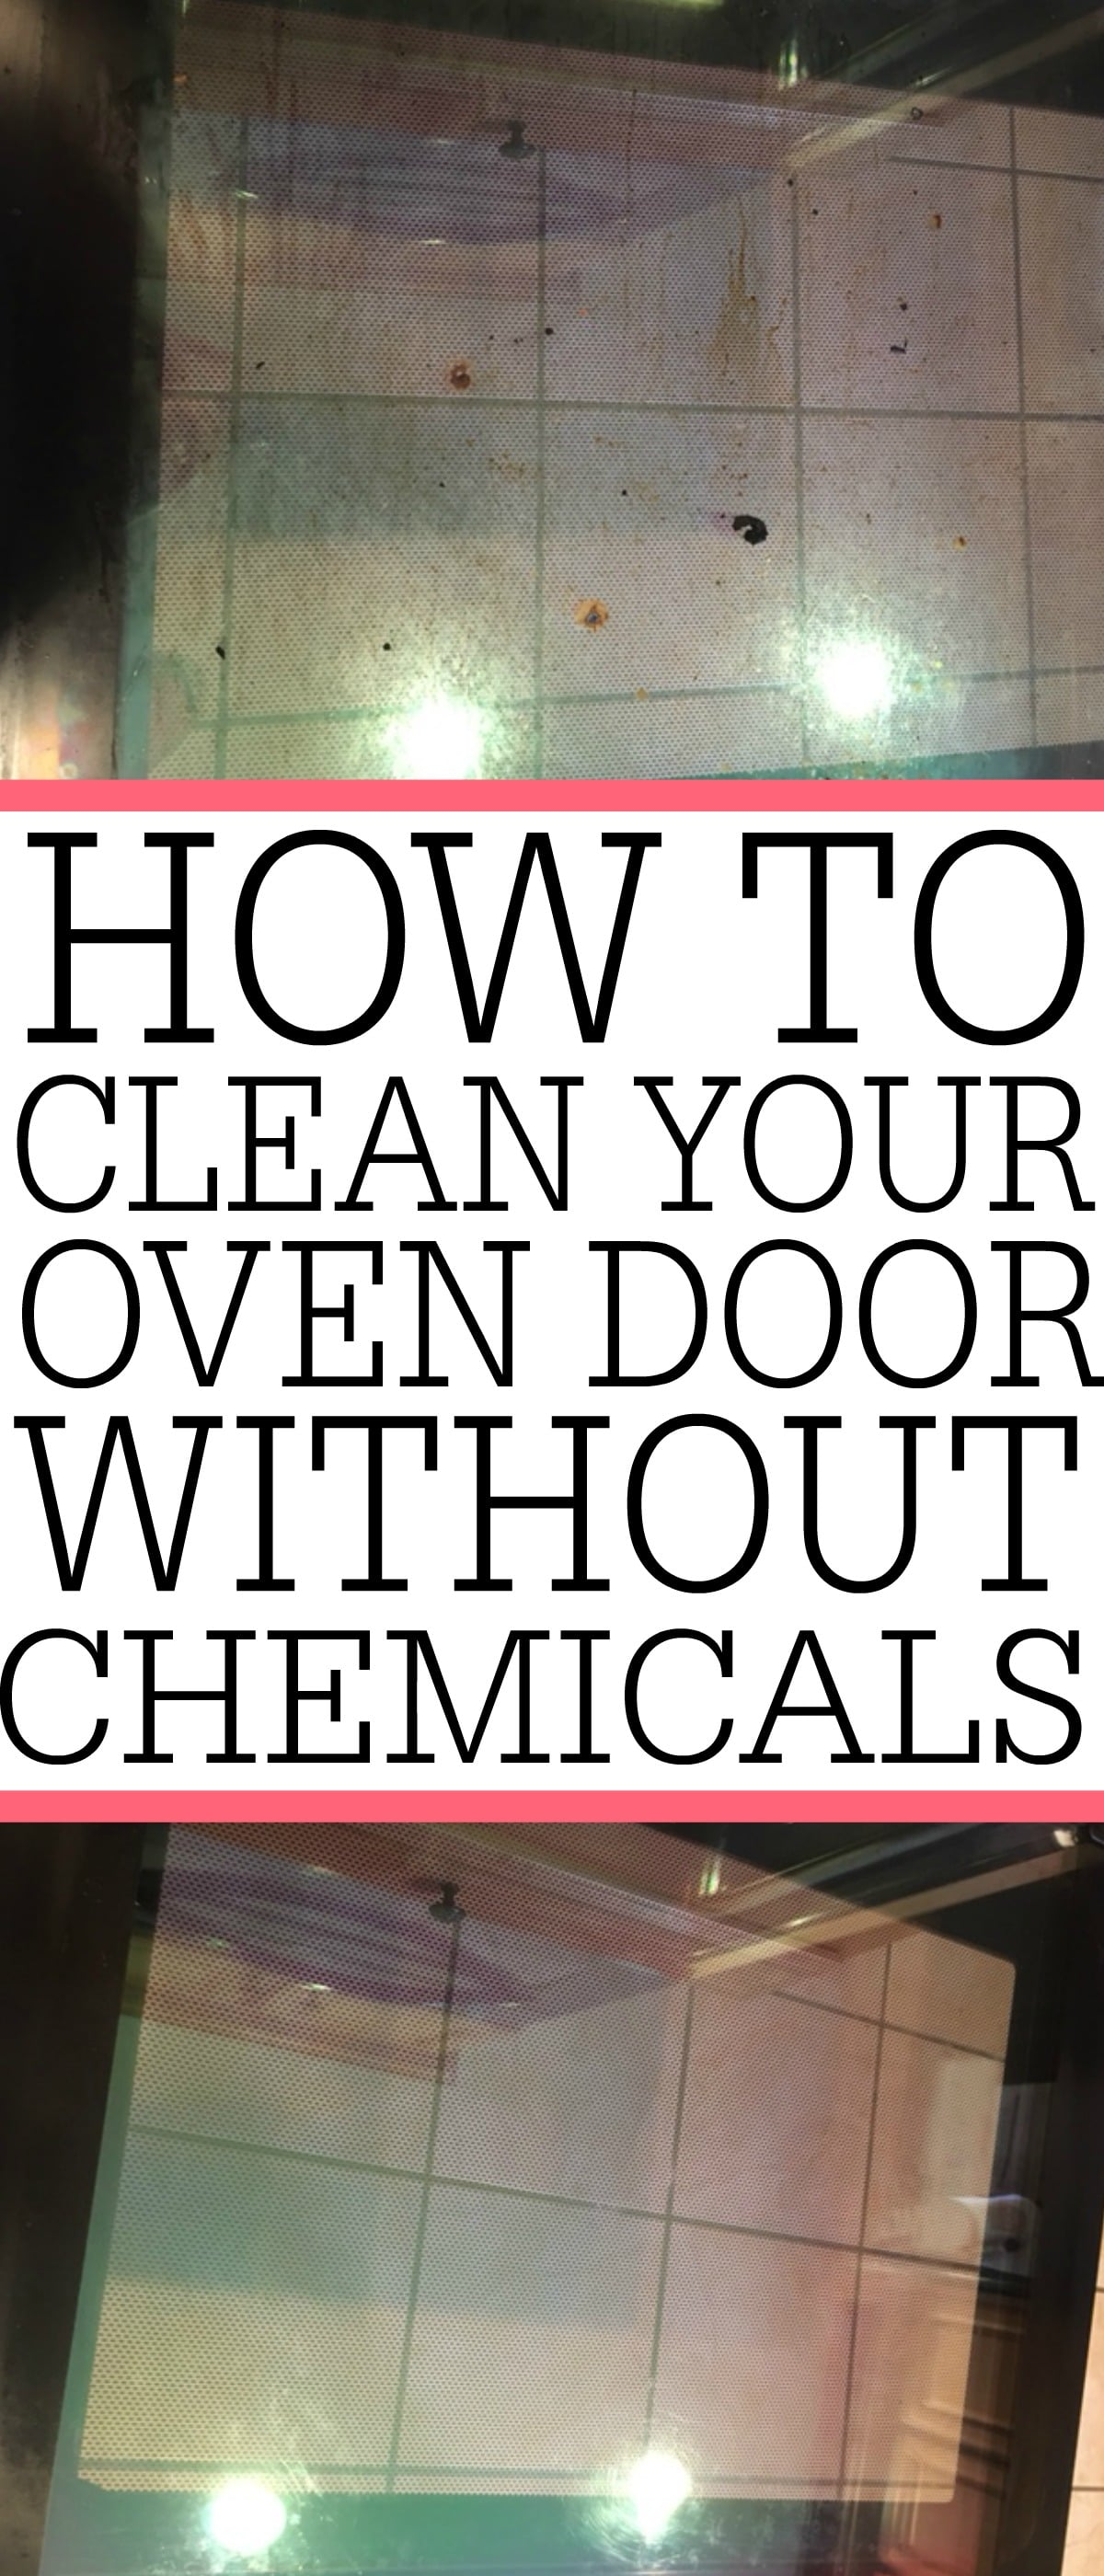 How To Clean Your Oven Glass Without Chemicals Frugally Blonde